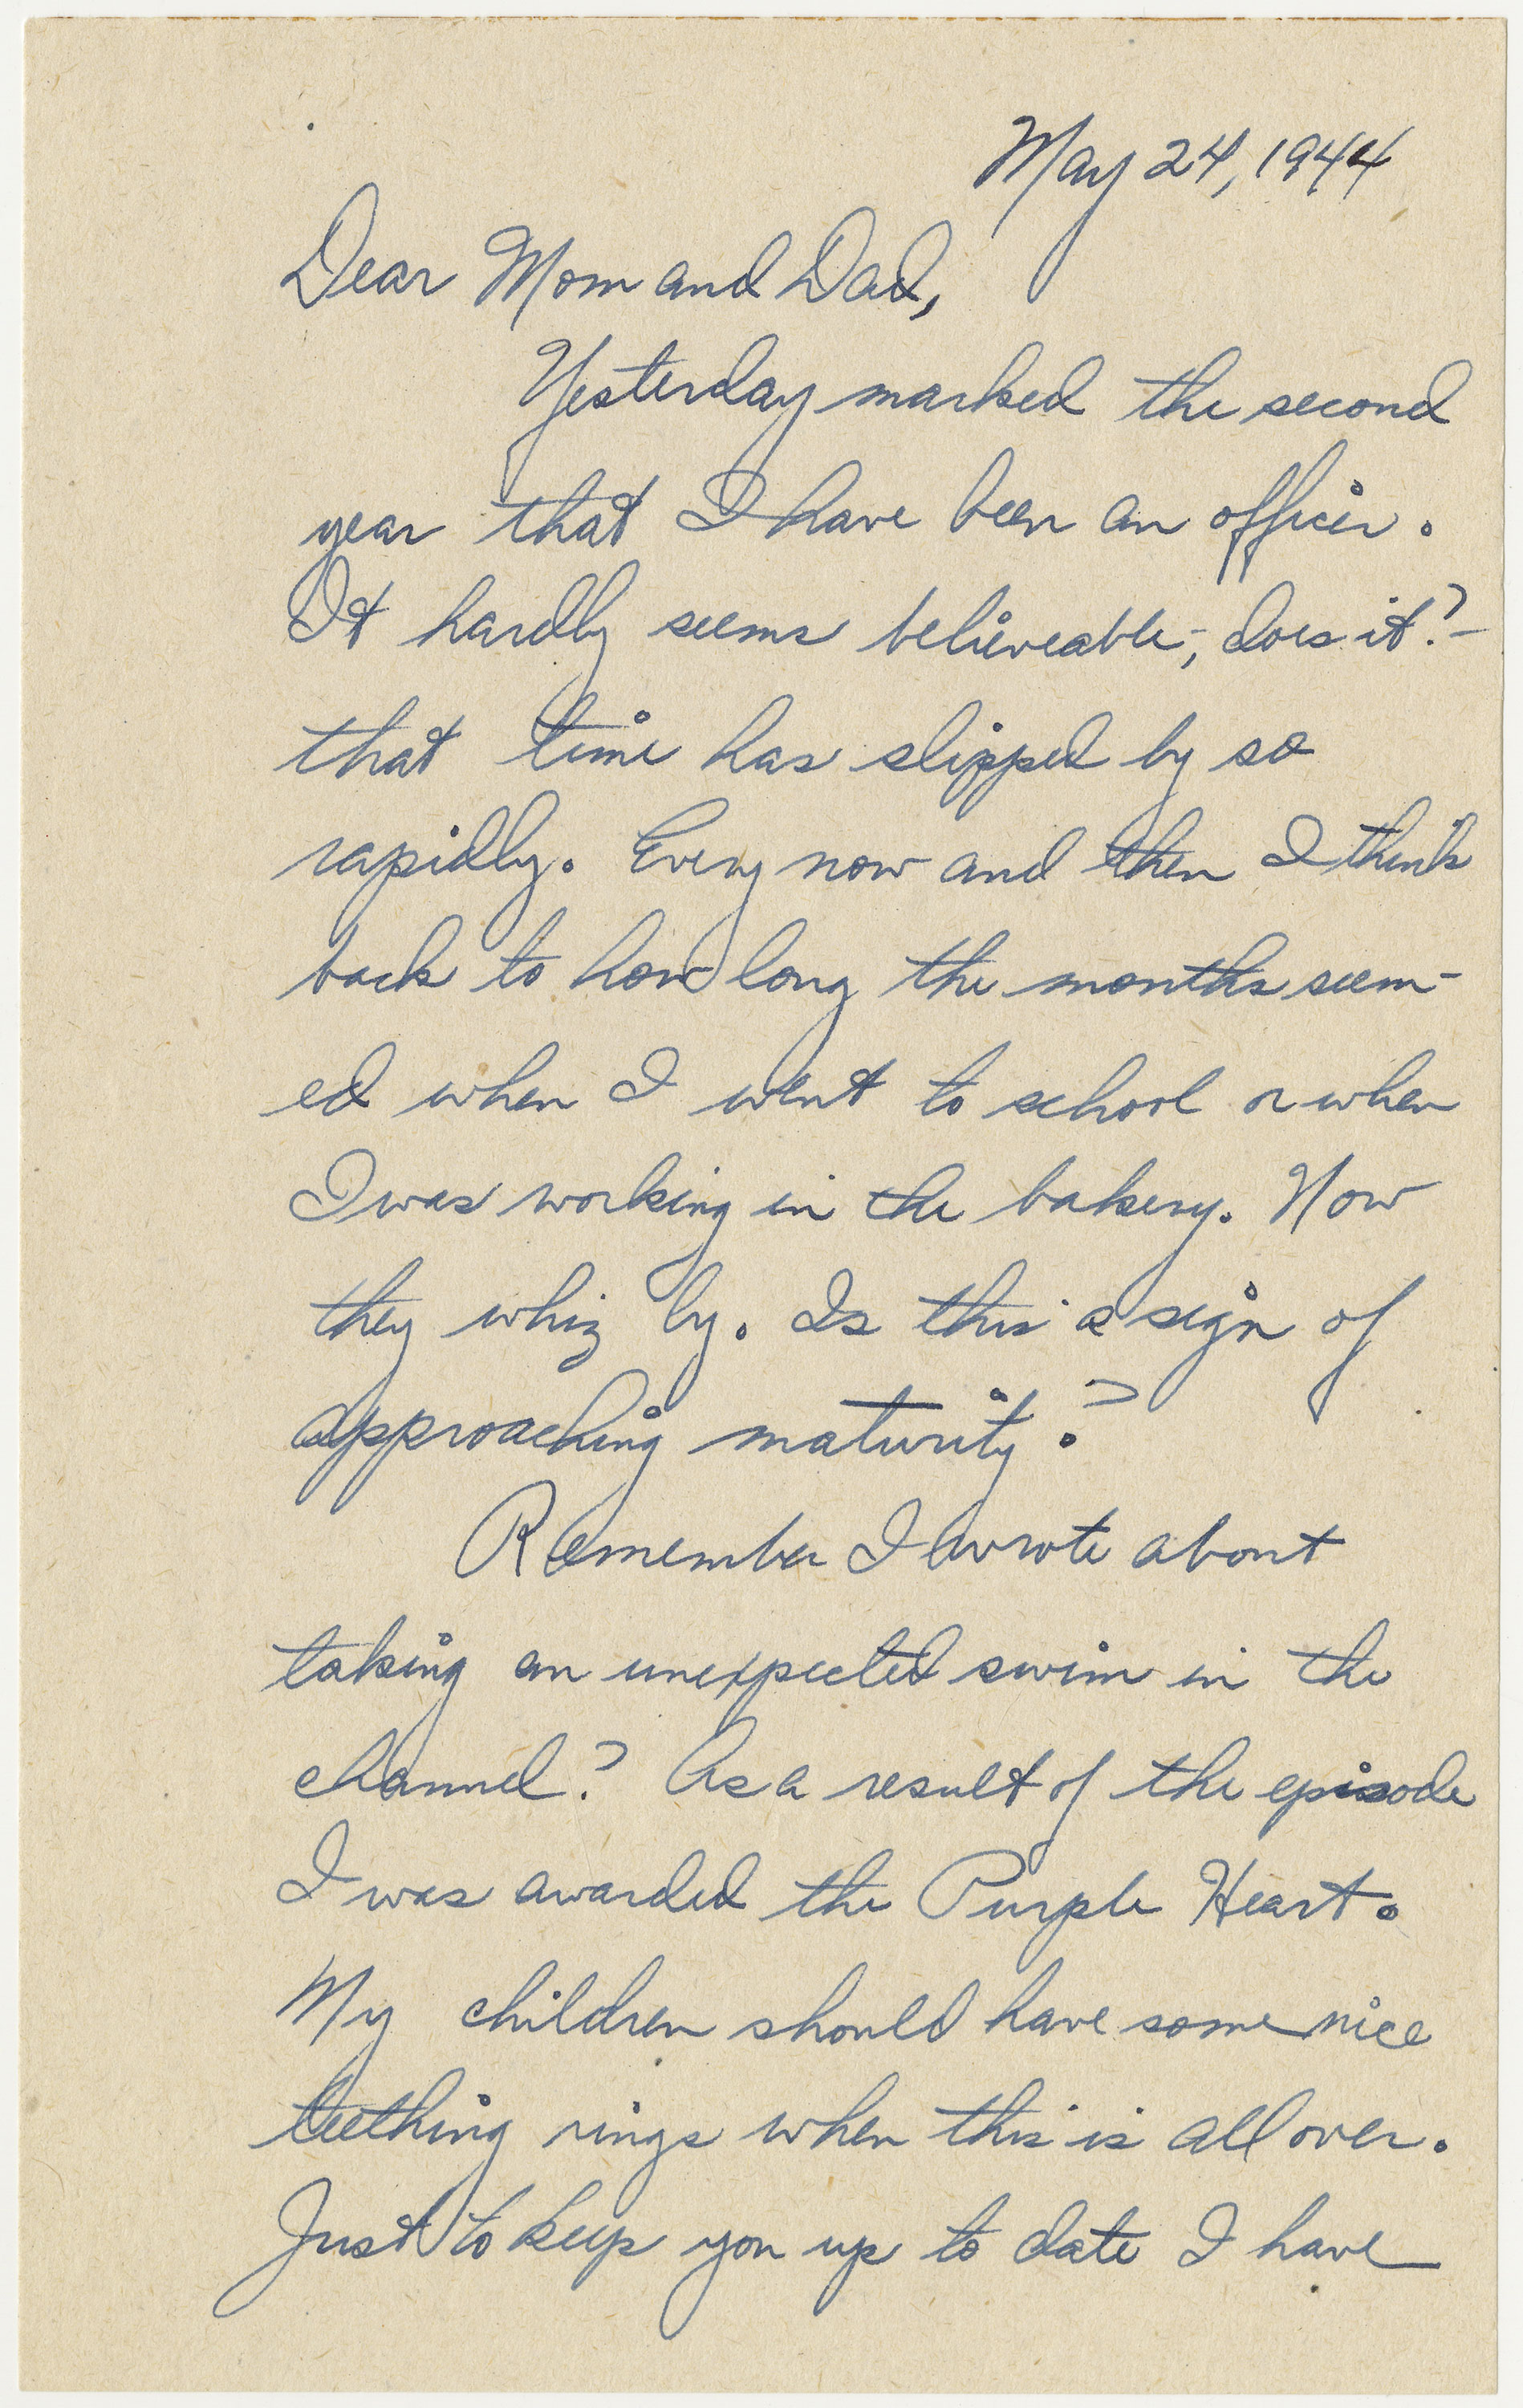 page 1 of letter written by Bischoff on May 24, 1944